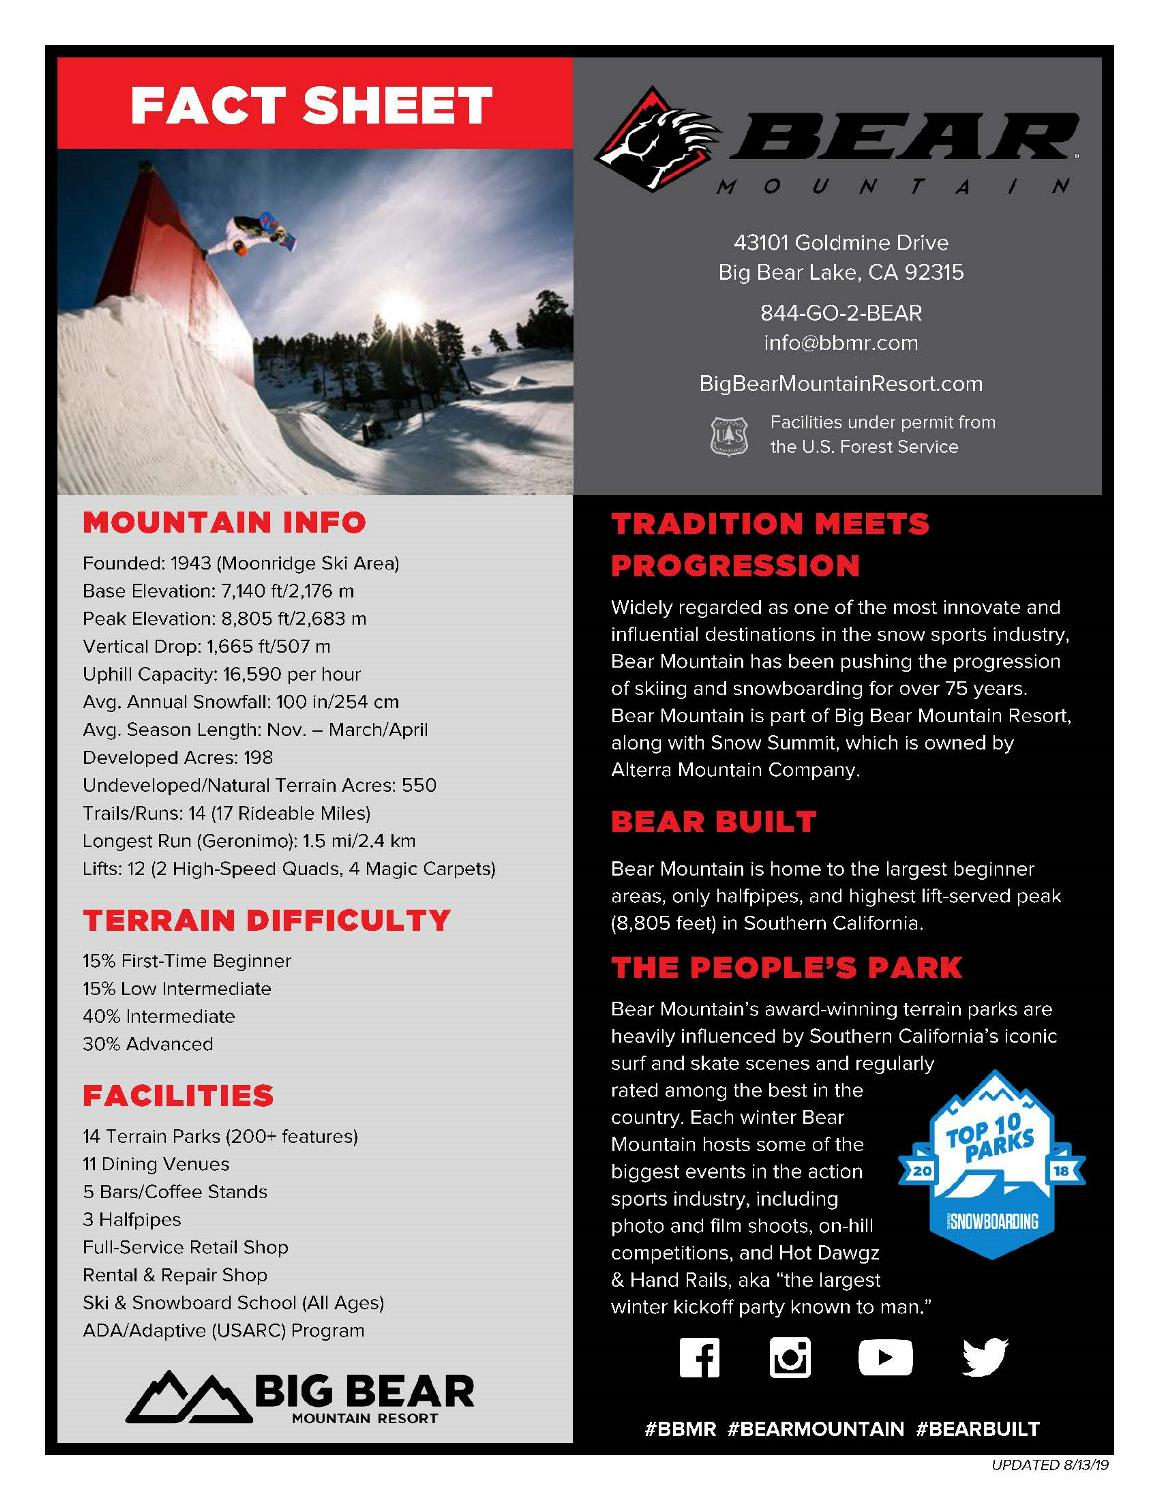 bear-mountain-fact-sheet-2019-20.jpg